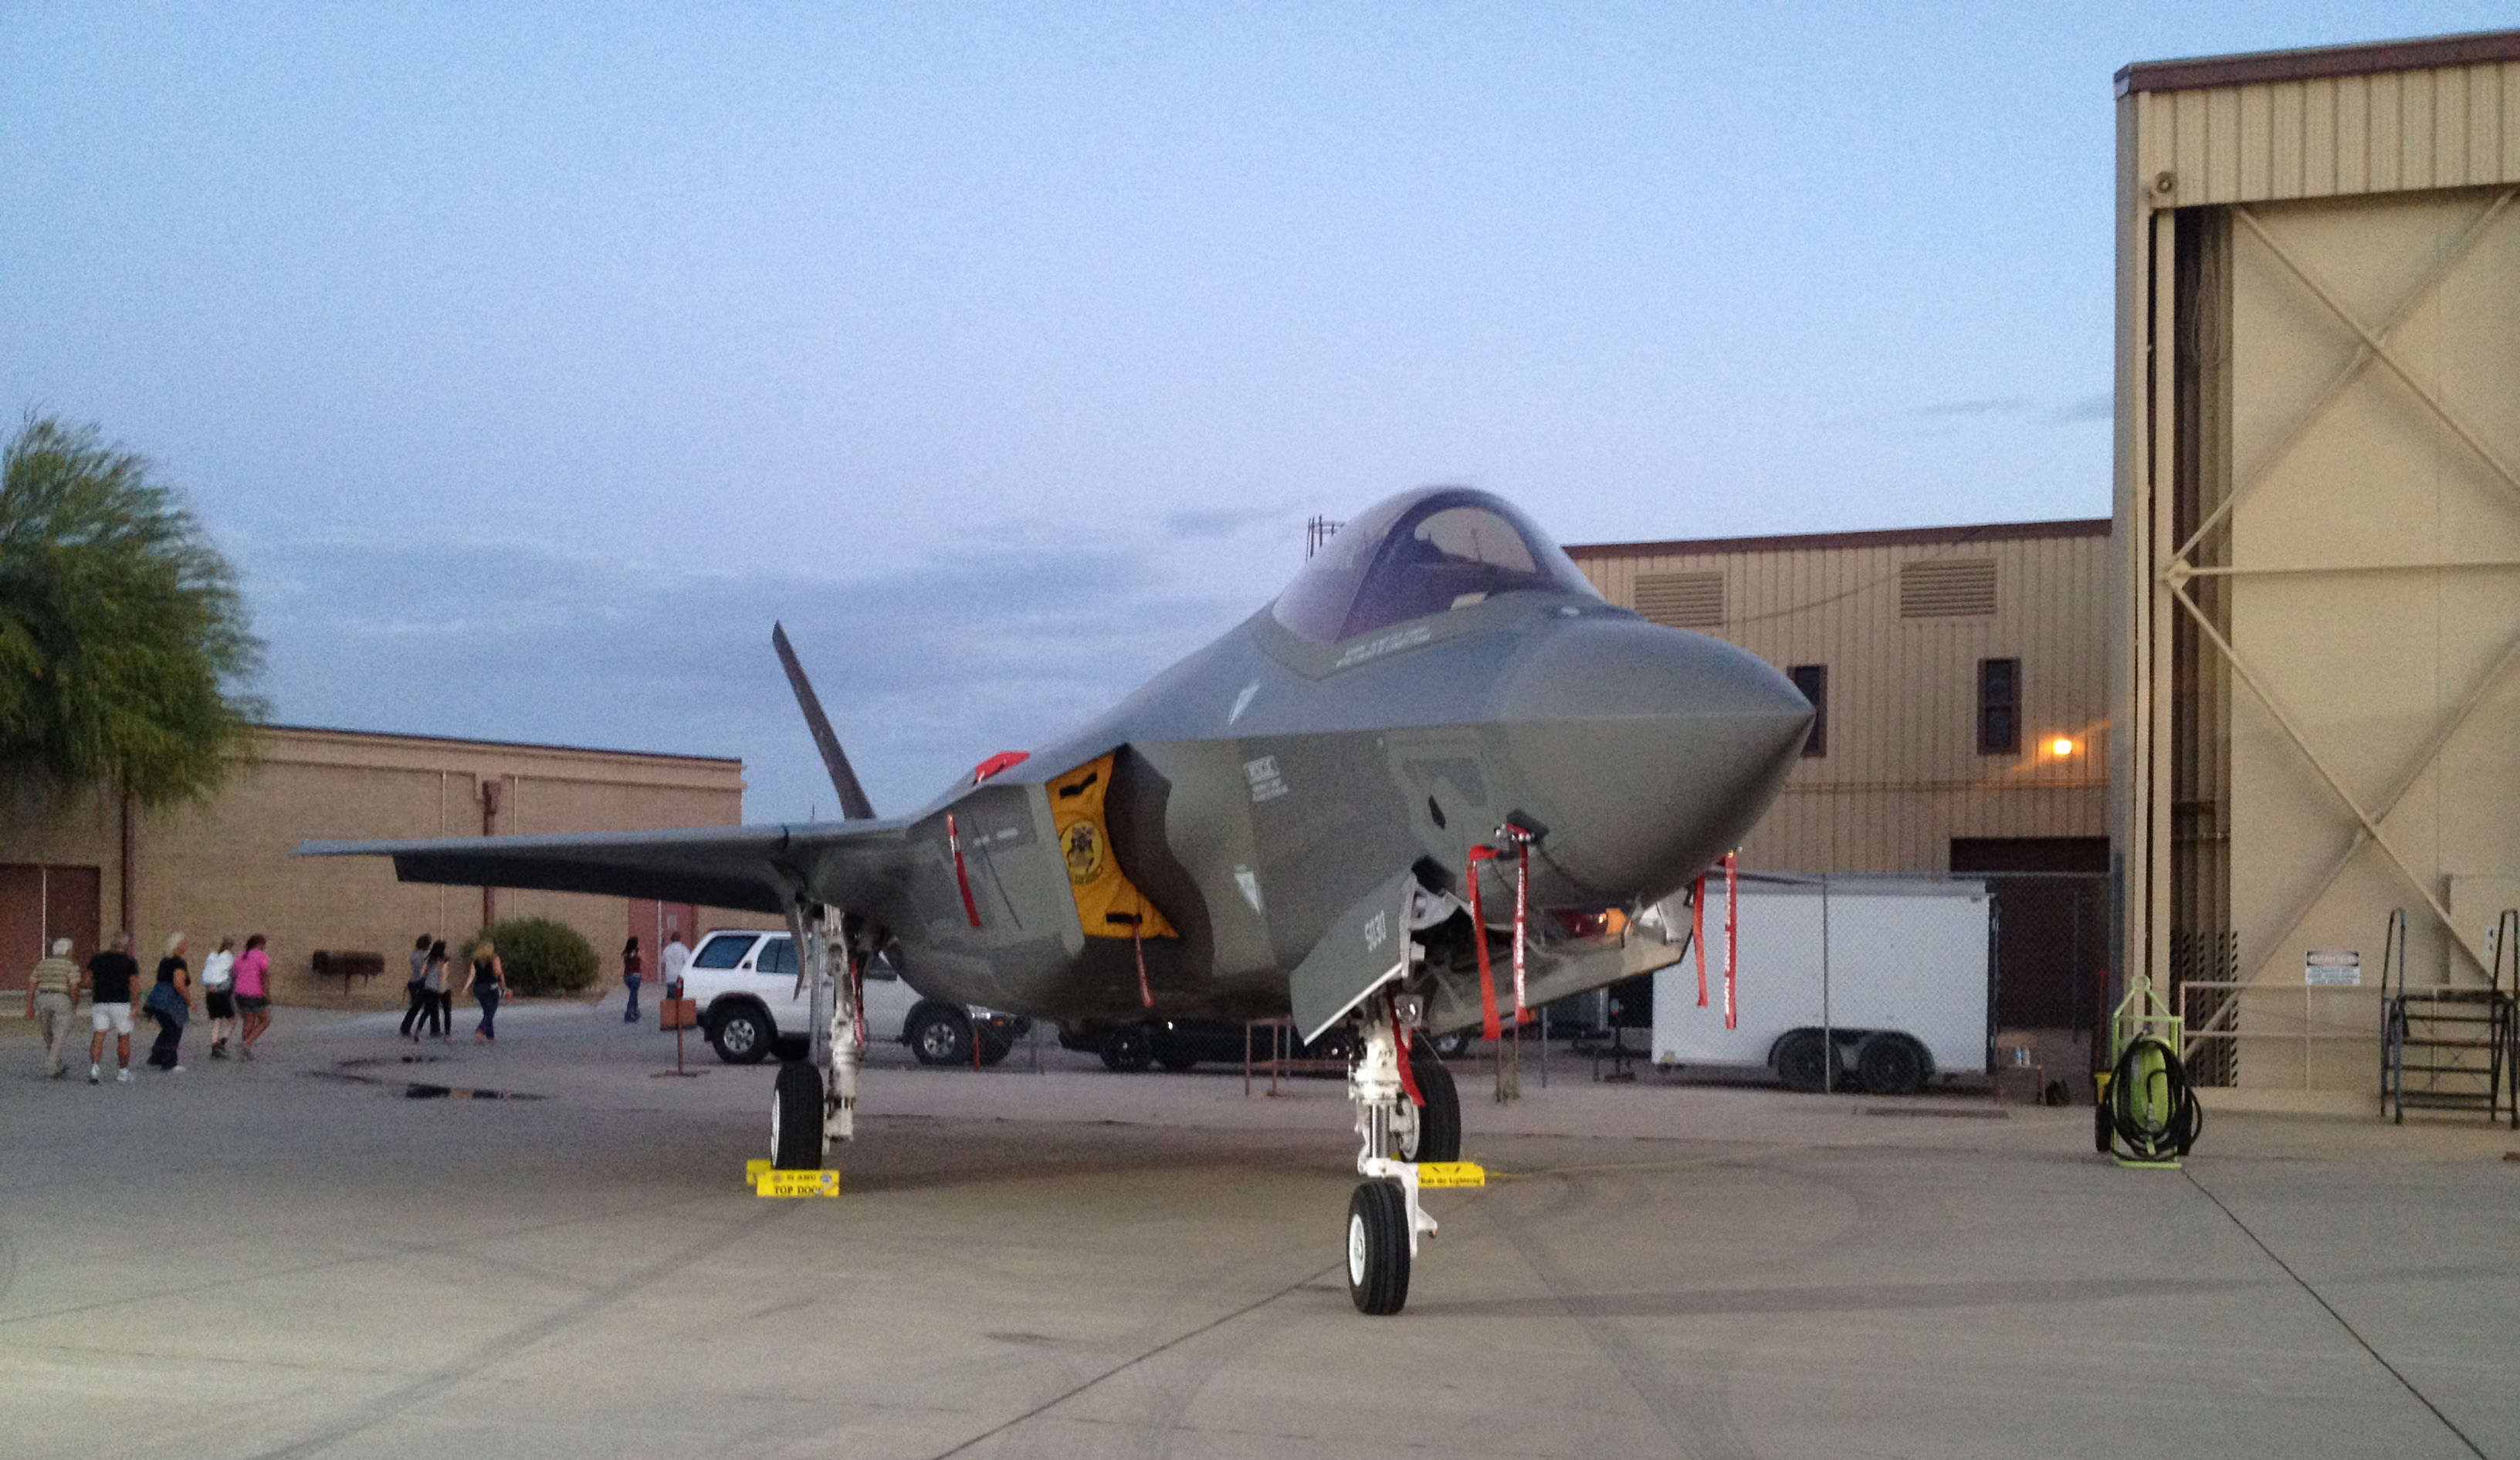 The US Air Force's F-35A Lightning II at the Luke Air Force Base air show in March, 2014. (photo by Matt Jolley)